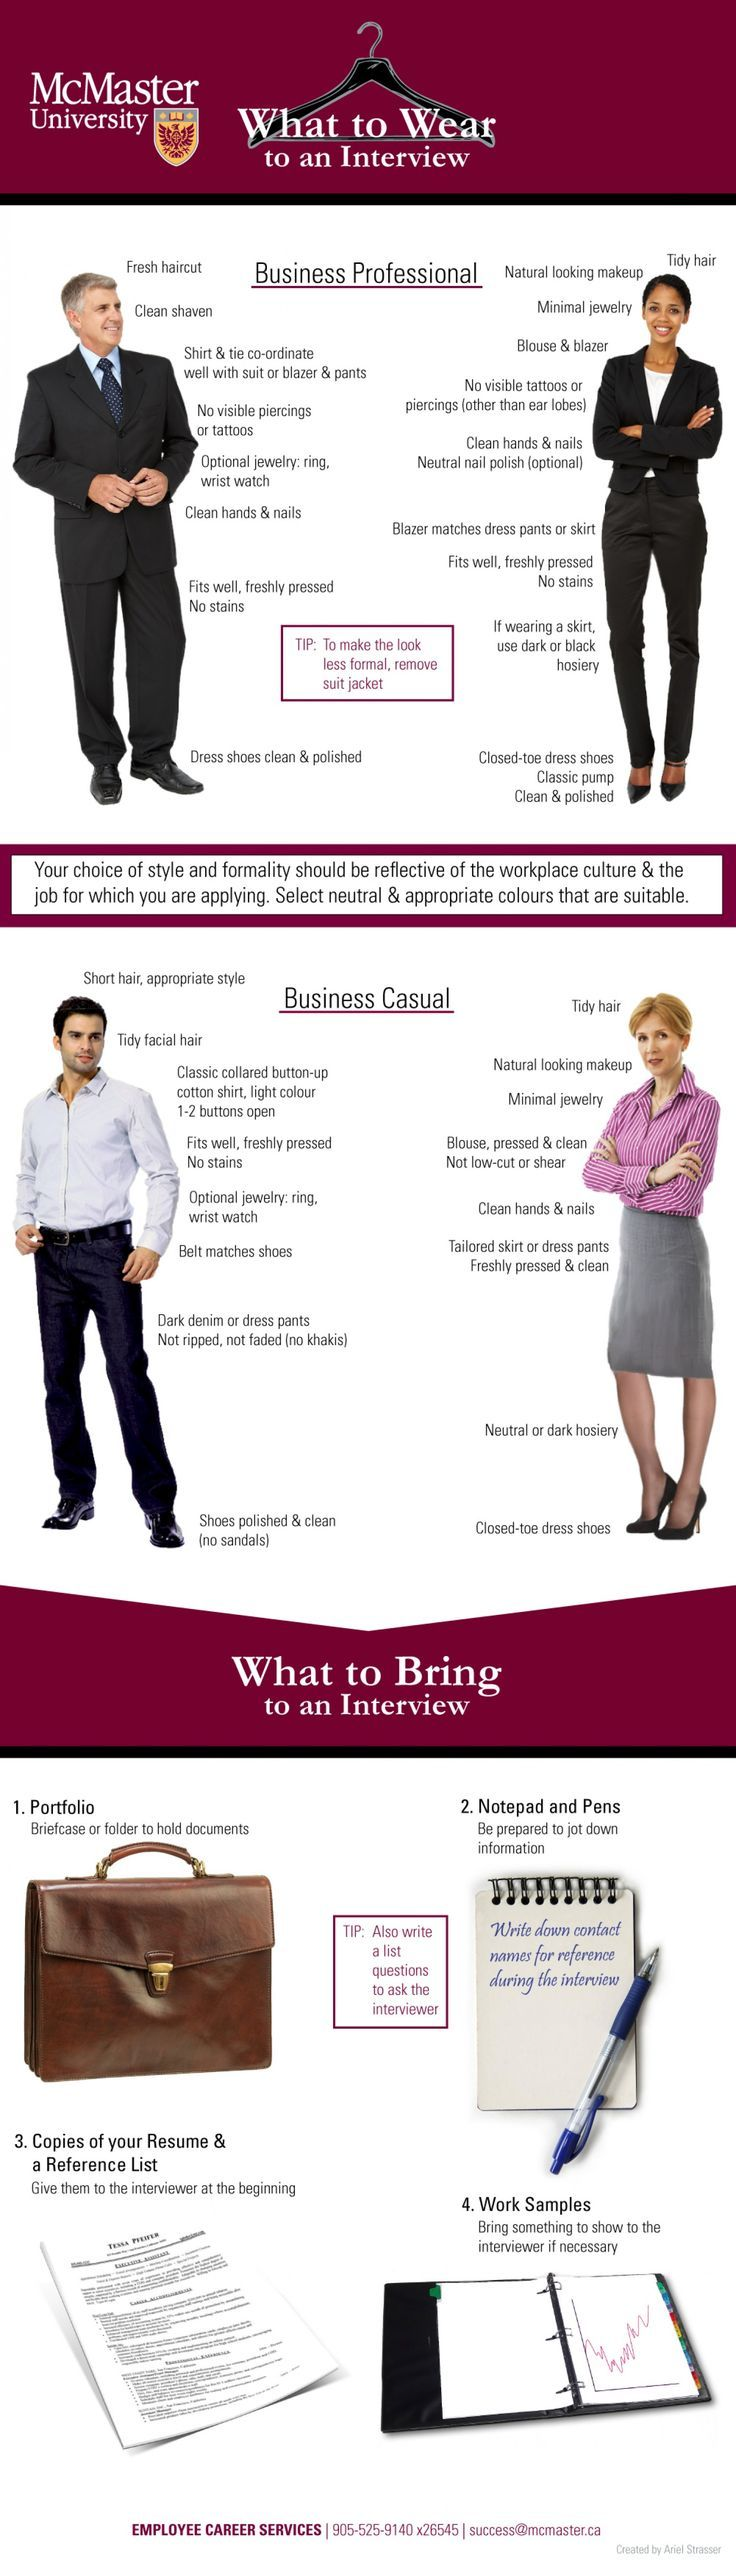 What to Wear and Bring to a Job Interview Infographic This